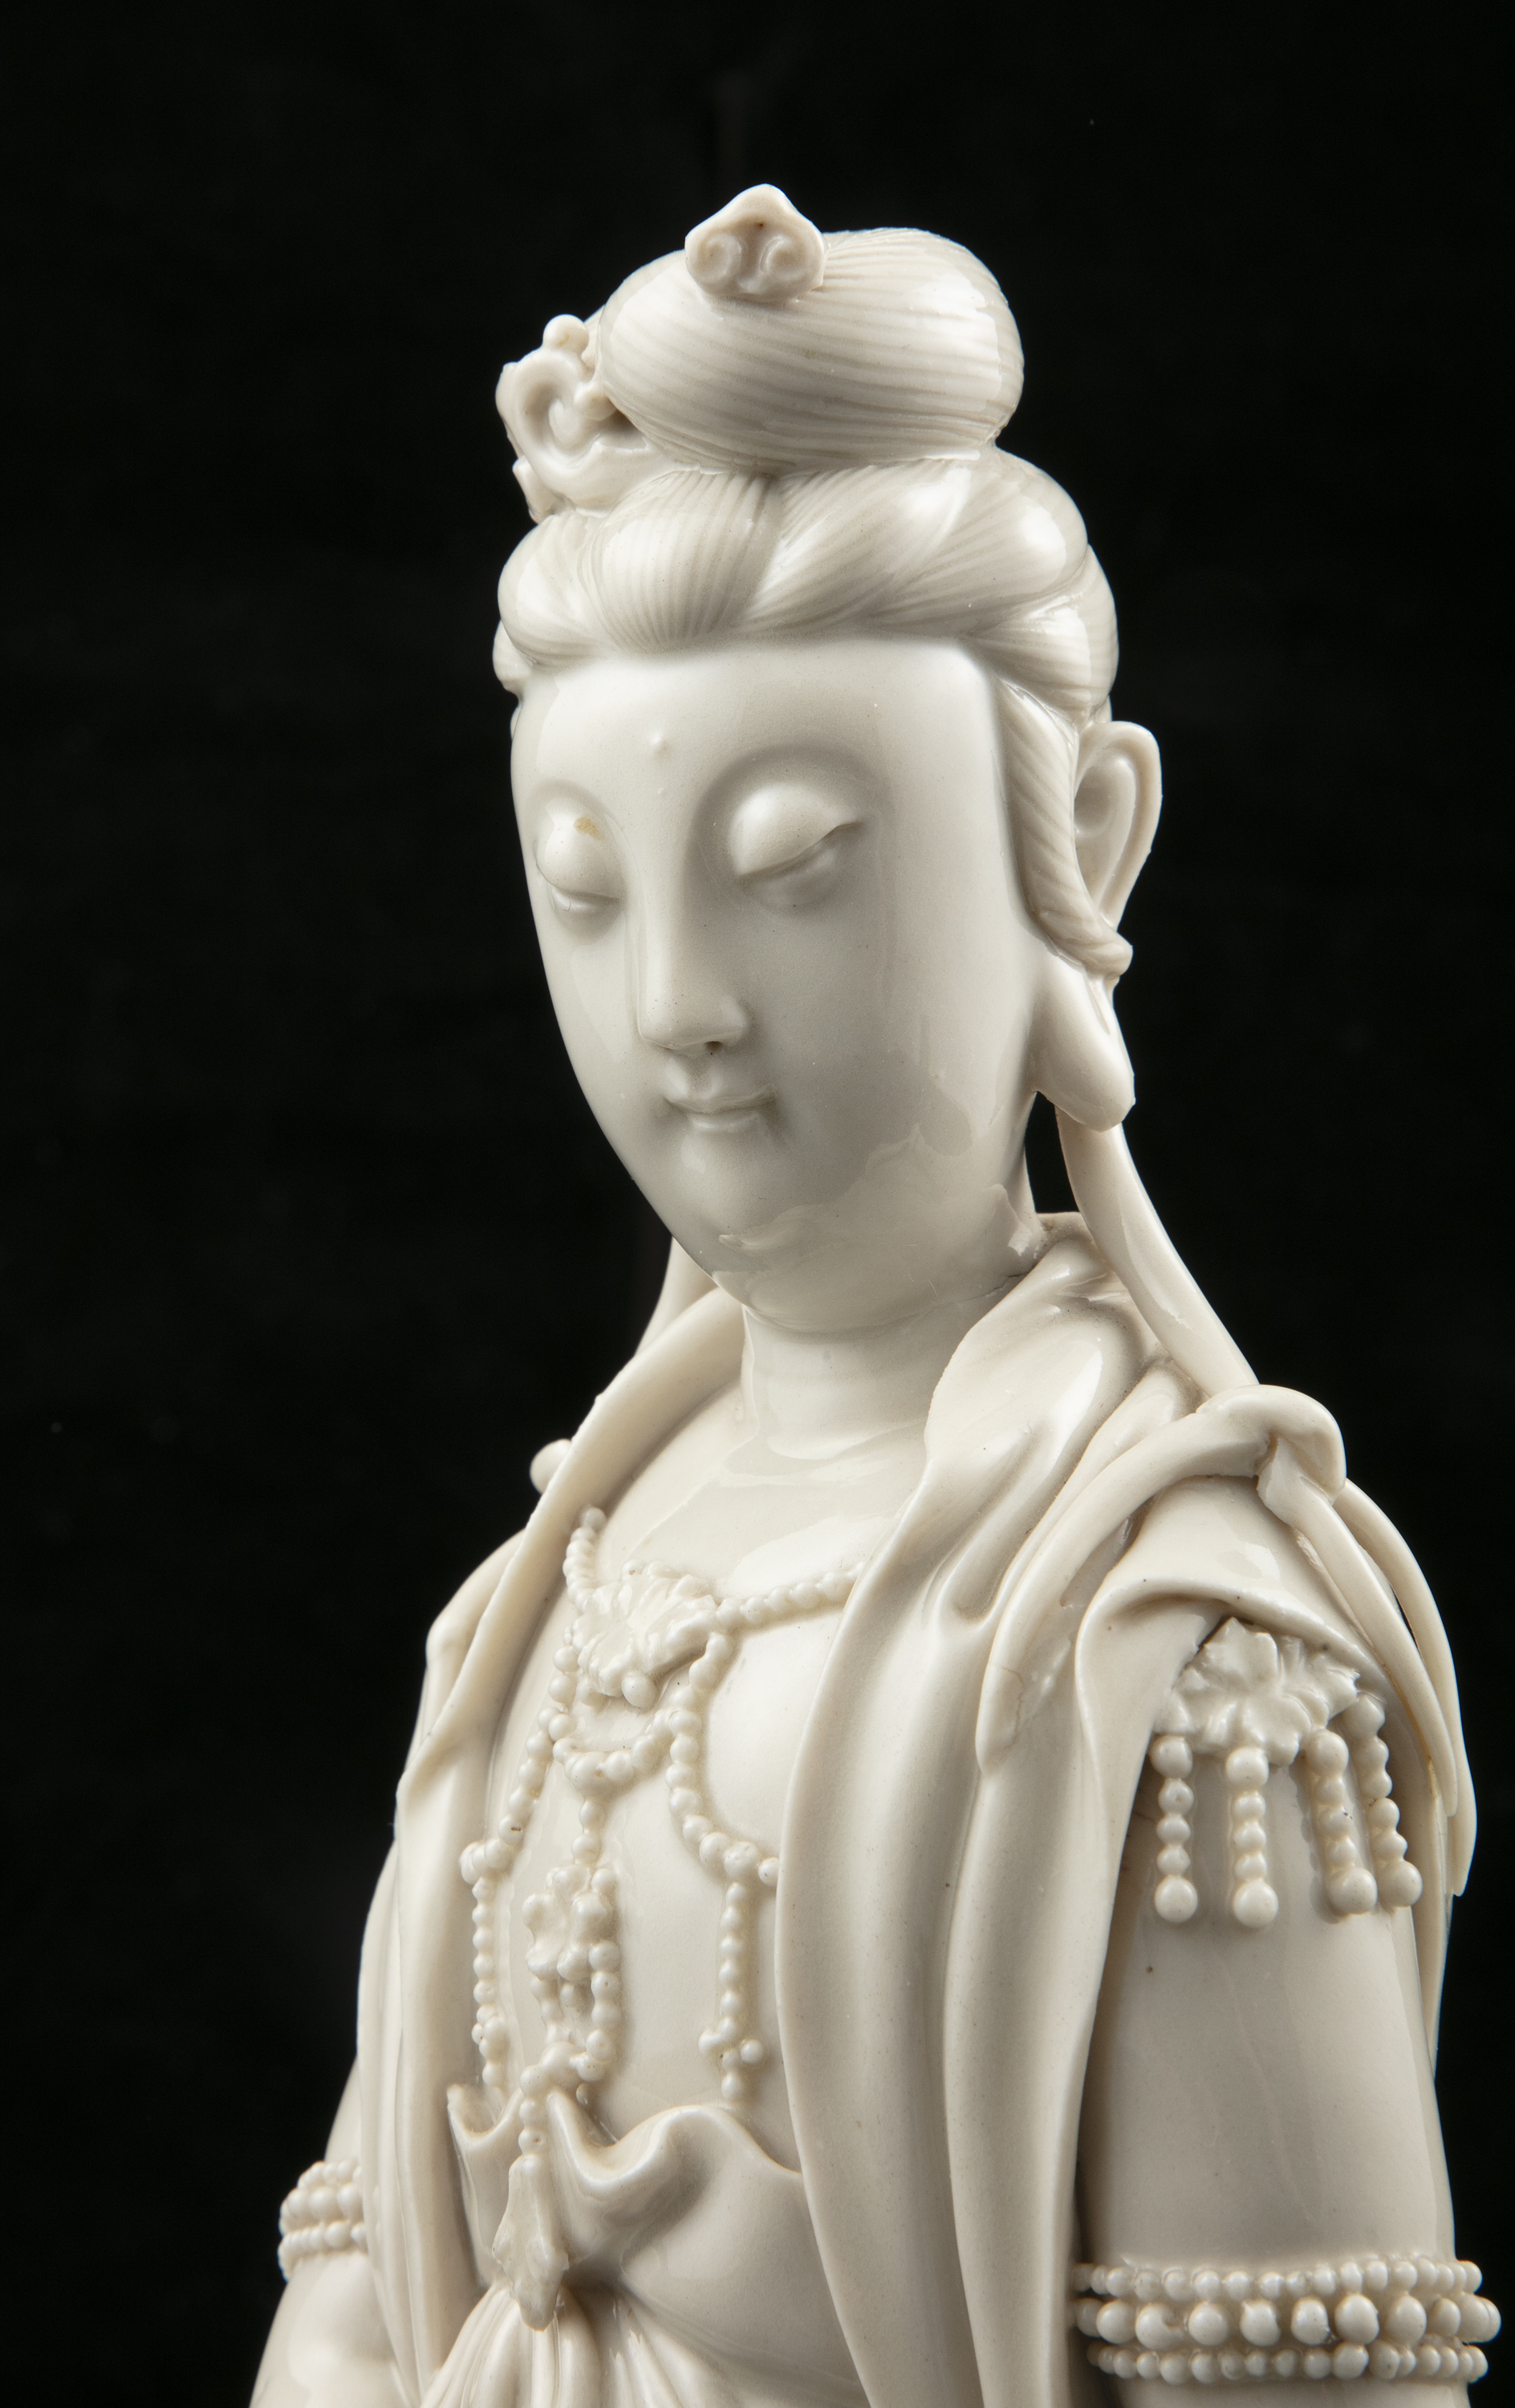 A LARGE DEHUA FIGURE OF A SEATED GUANYIN IMPRESSED WITH A HE CHAOZONG 何朝宗 CALABASH SHAPED SEAL - Image 22 of 48